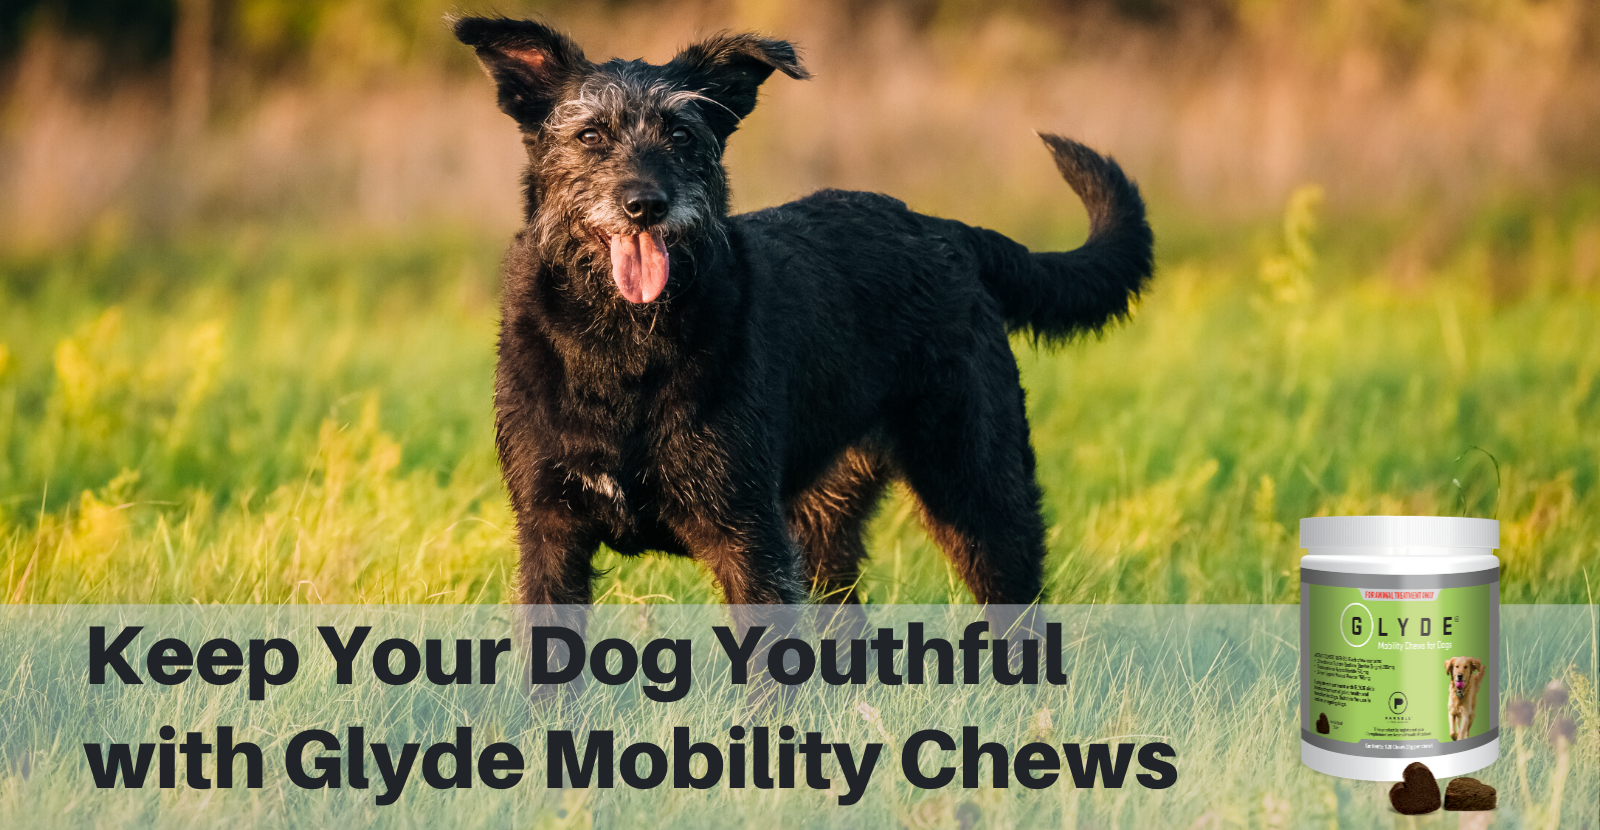 Keep Your Dog Youthful with Glyde